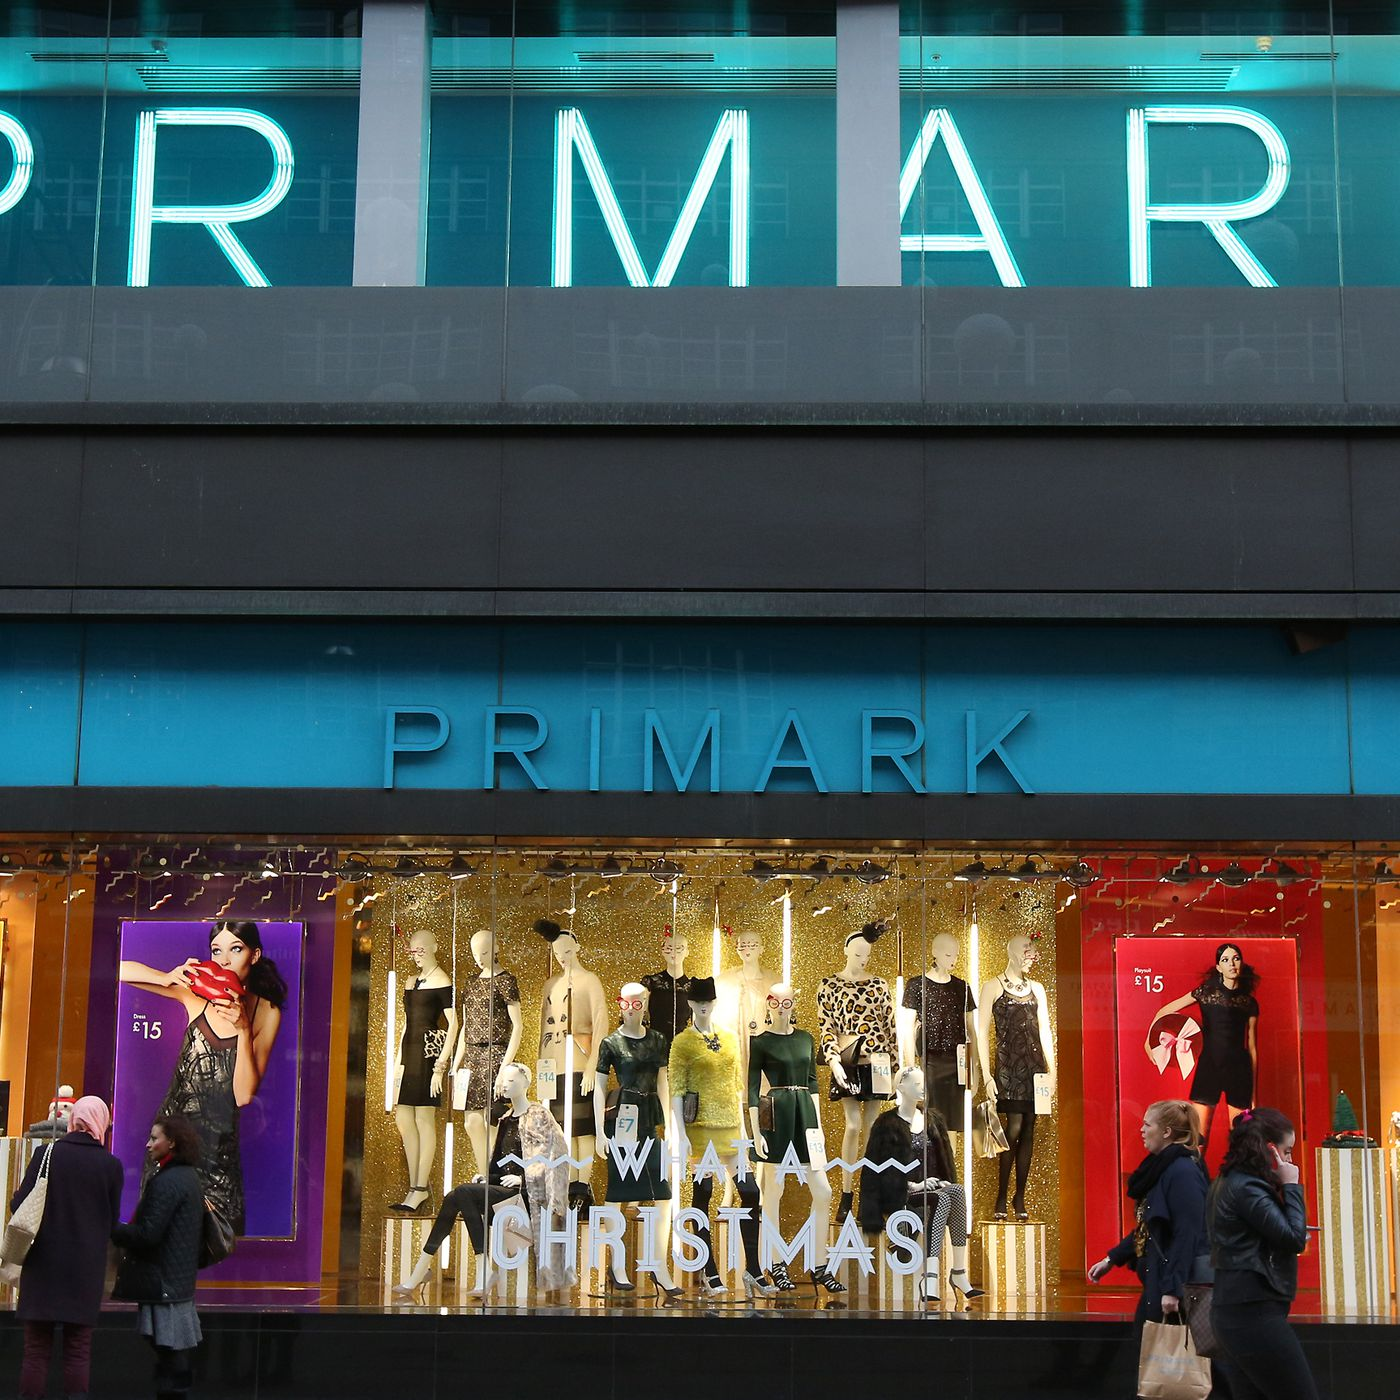 ca63632c9c34 Everything to Know About Primark